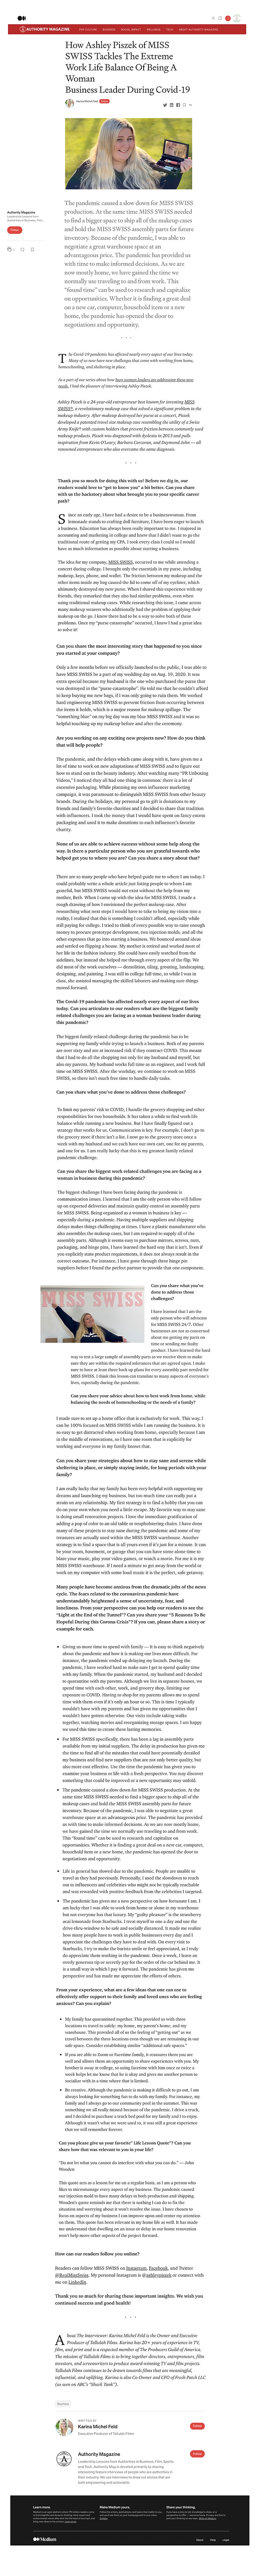 MISS SWISS Authority JPEG.jpg